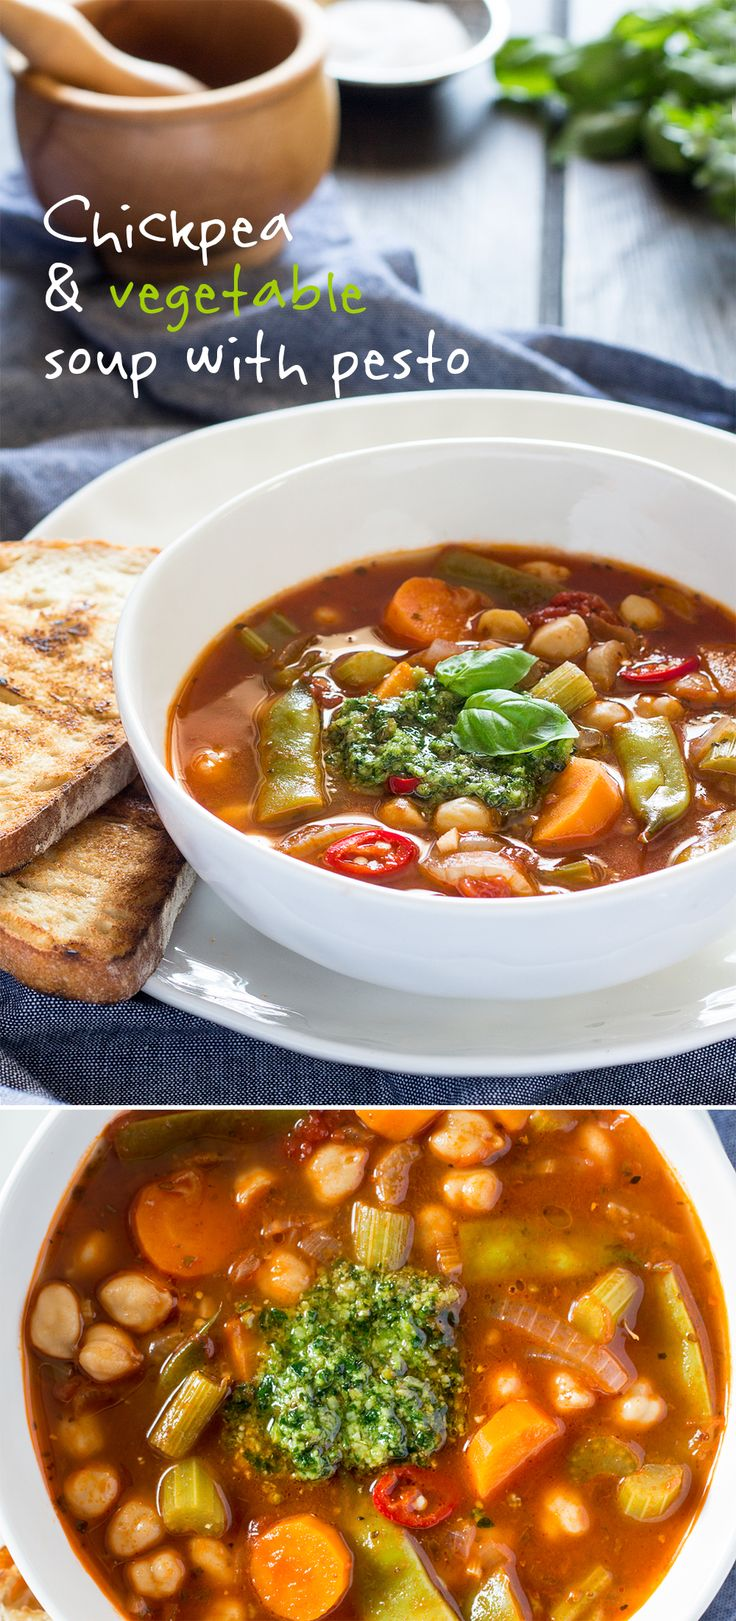 A delicious and #filling #soup with plenty of #vegetables and #chickpeas topped with a dollop of fragrant #parsley and #basil pesto. It's naturally #vegan and #glutenfree. #recipe #recipes #vegetarian #lunch #dinner #healthy